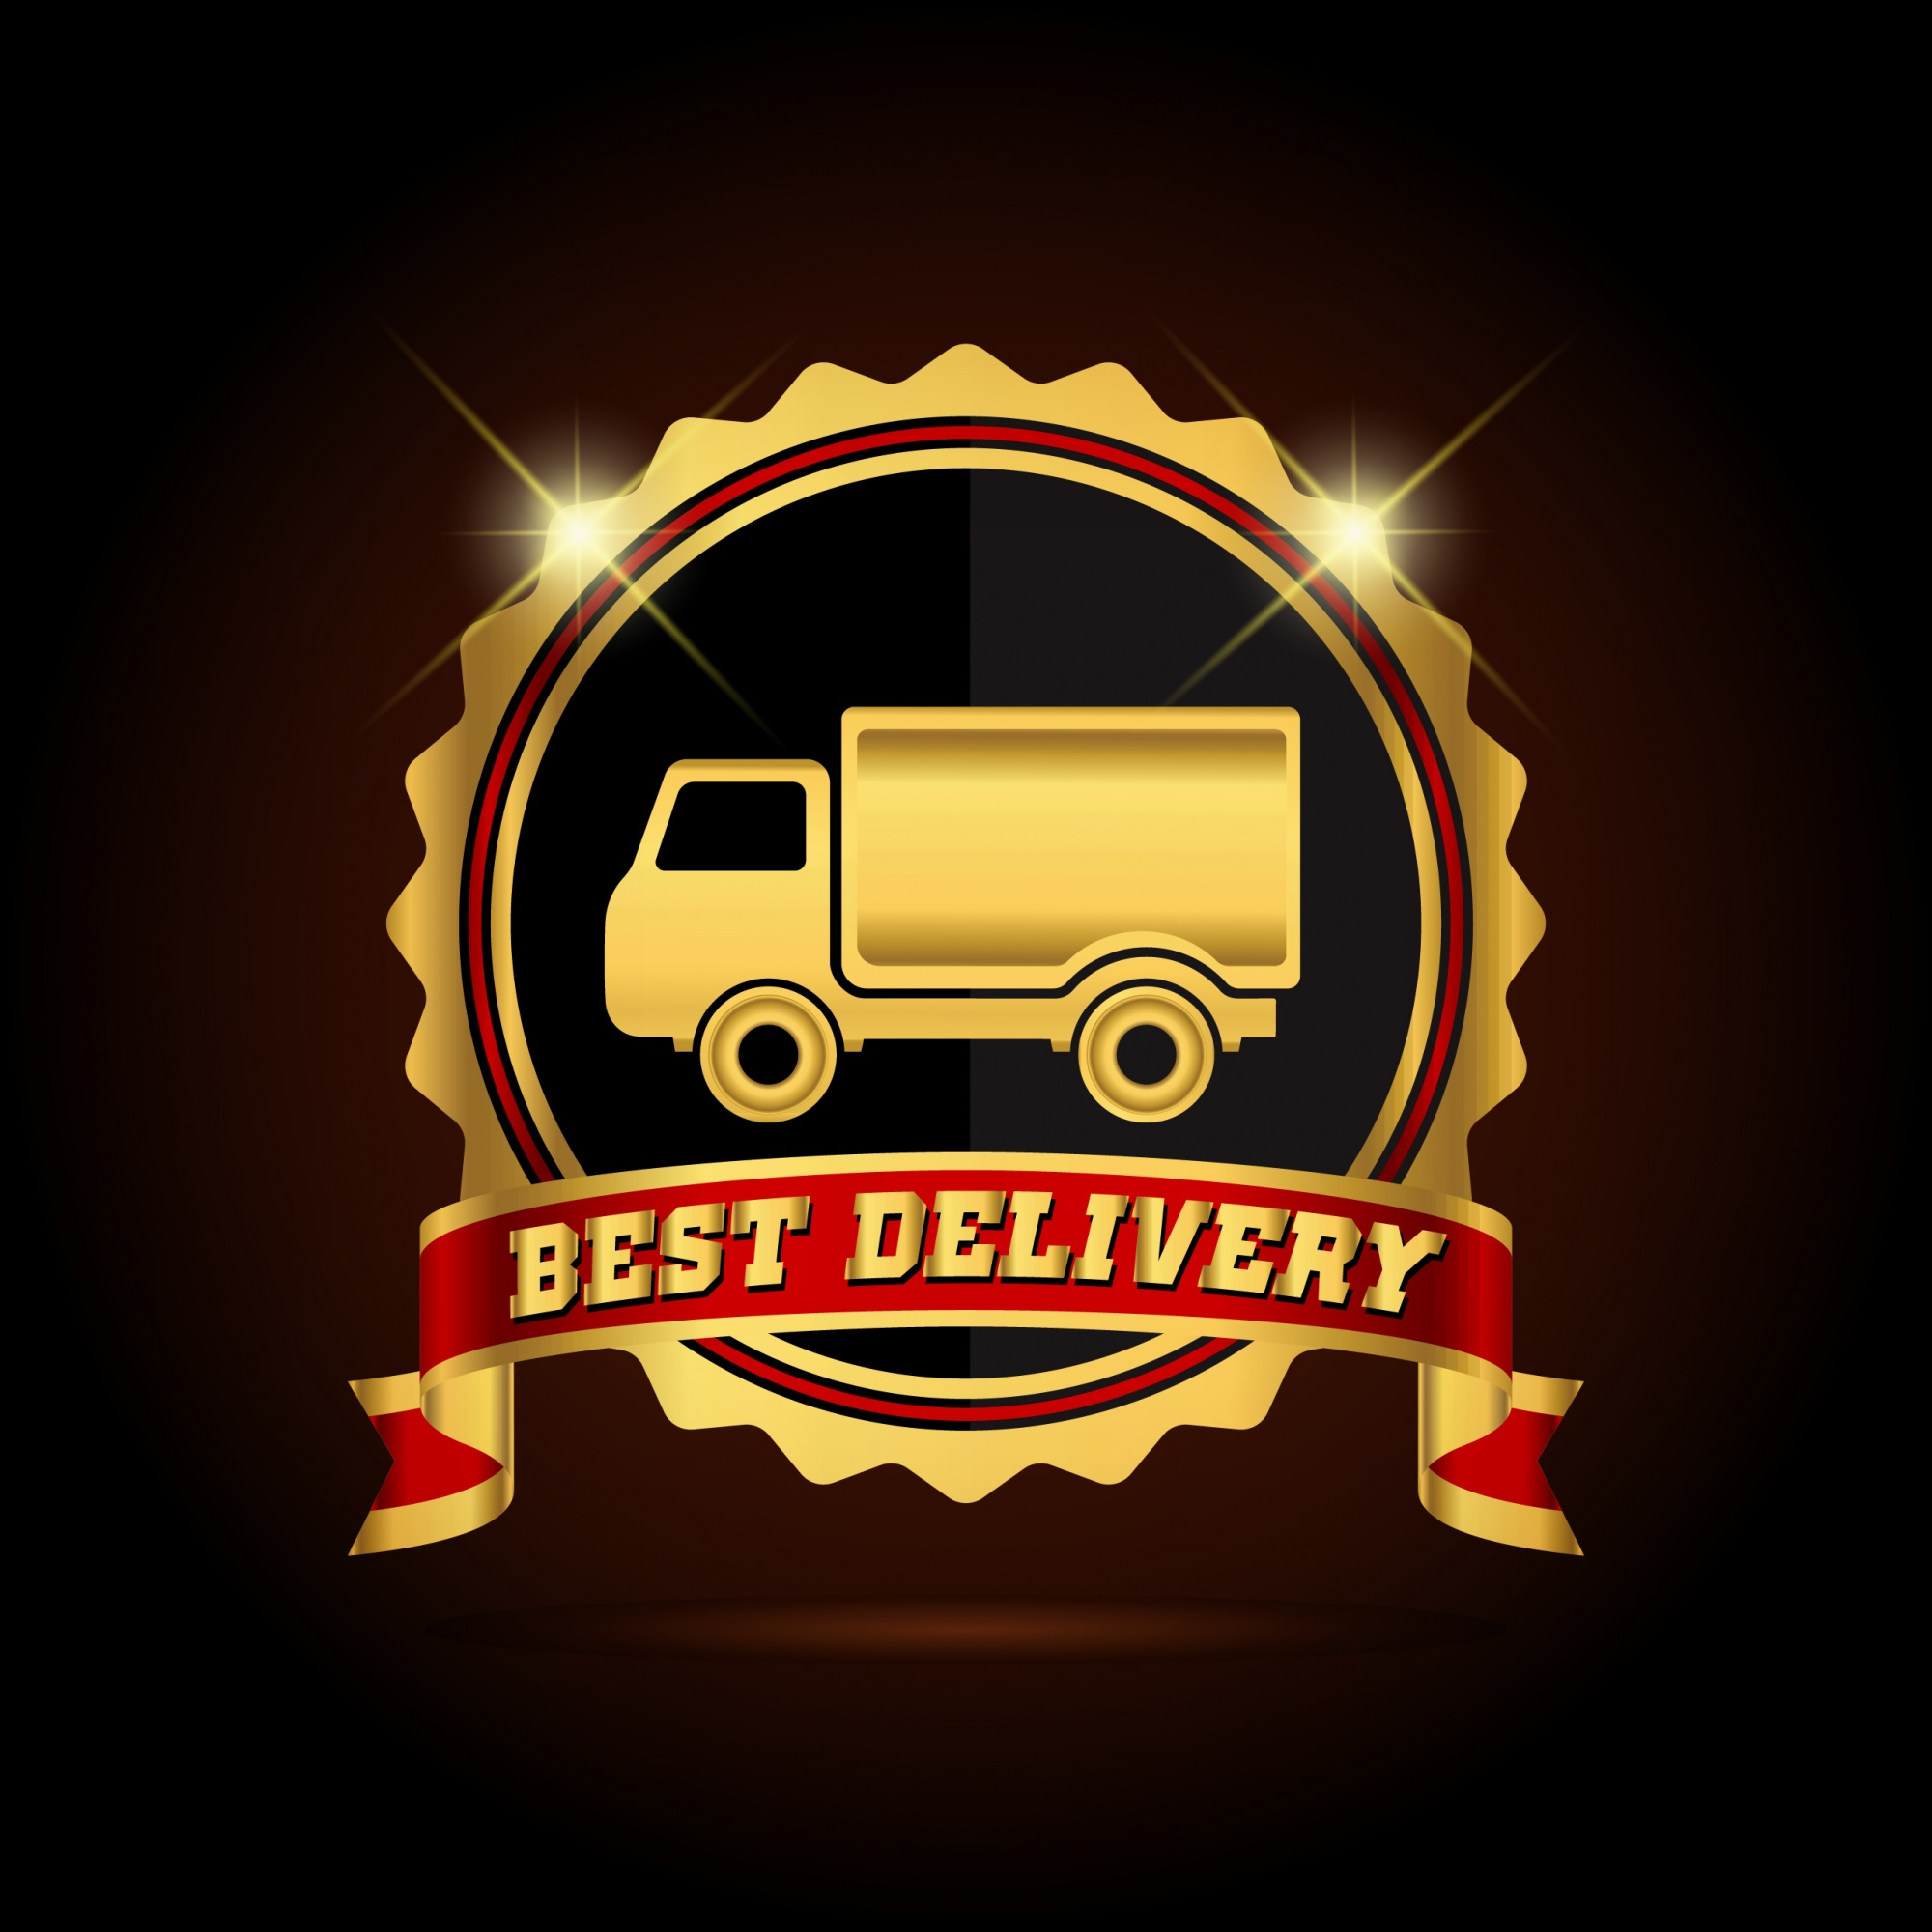 Best delivery logo background